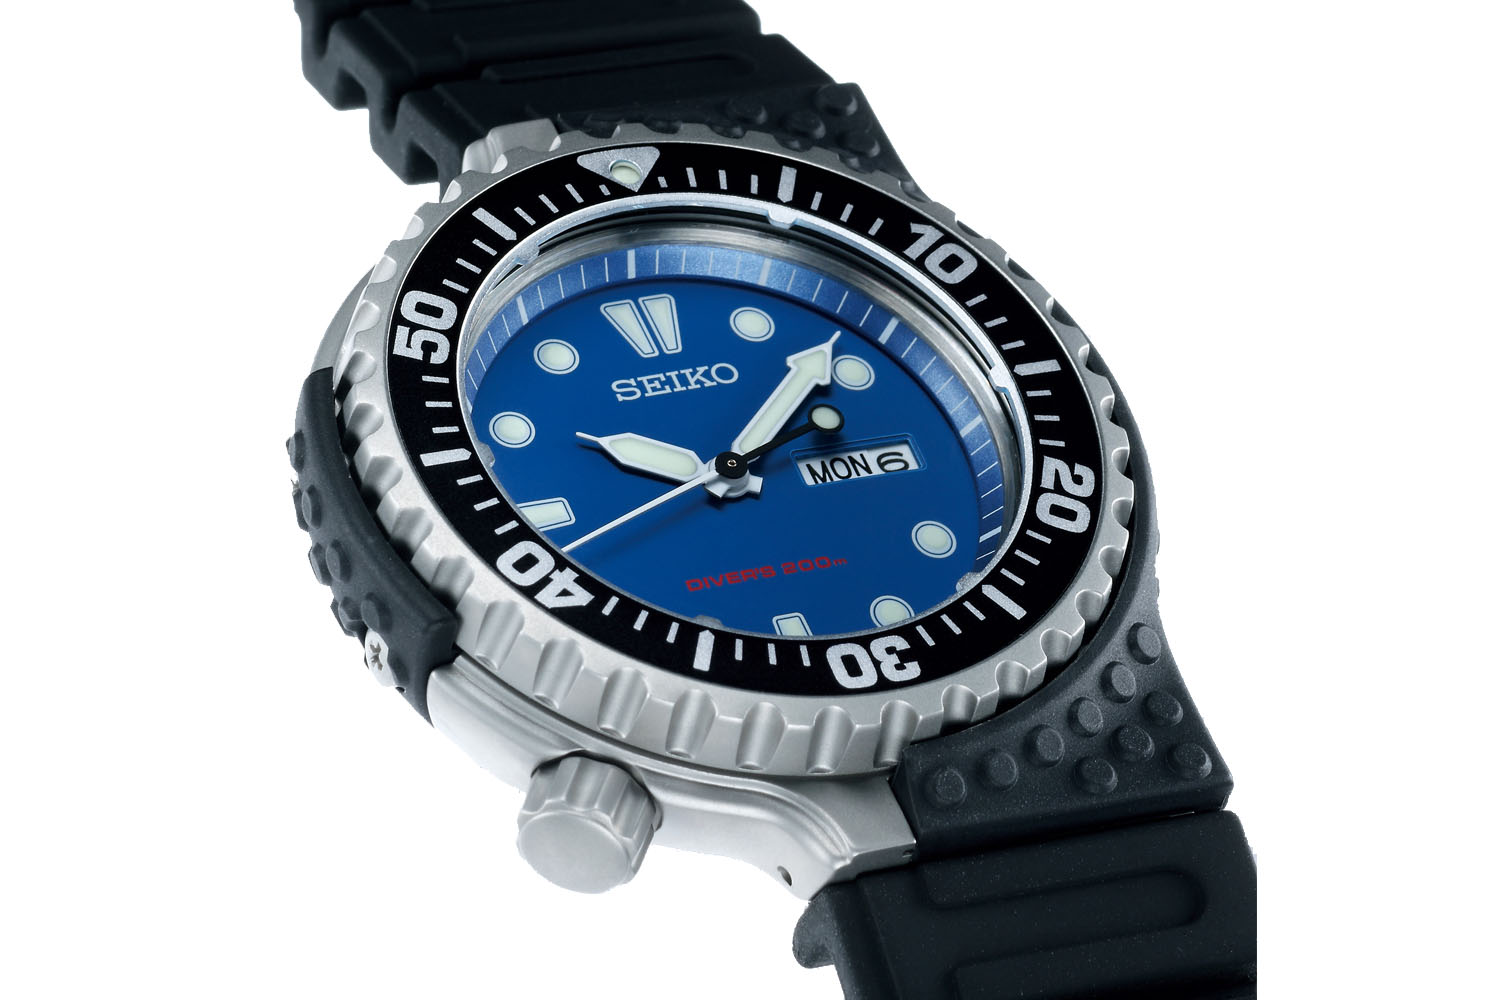 watch diving cressimanta cressi gauges dive shop analog watches manta scuba computers index online